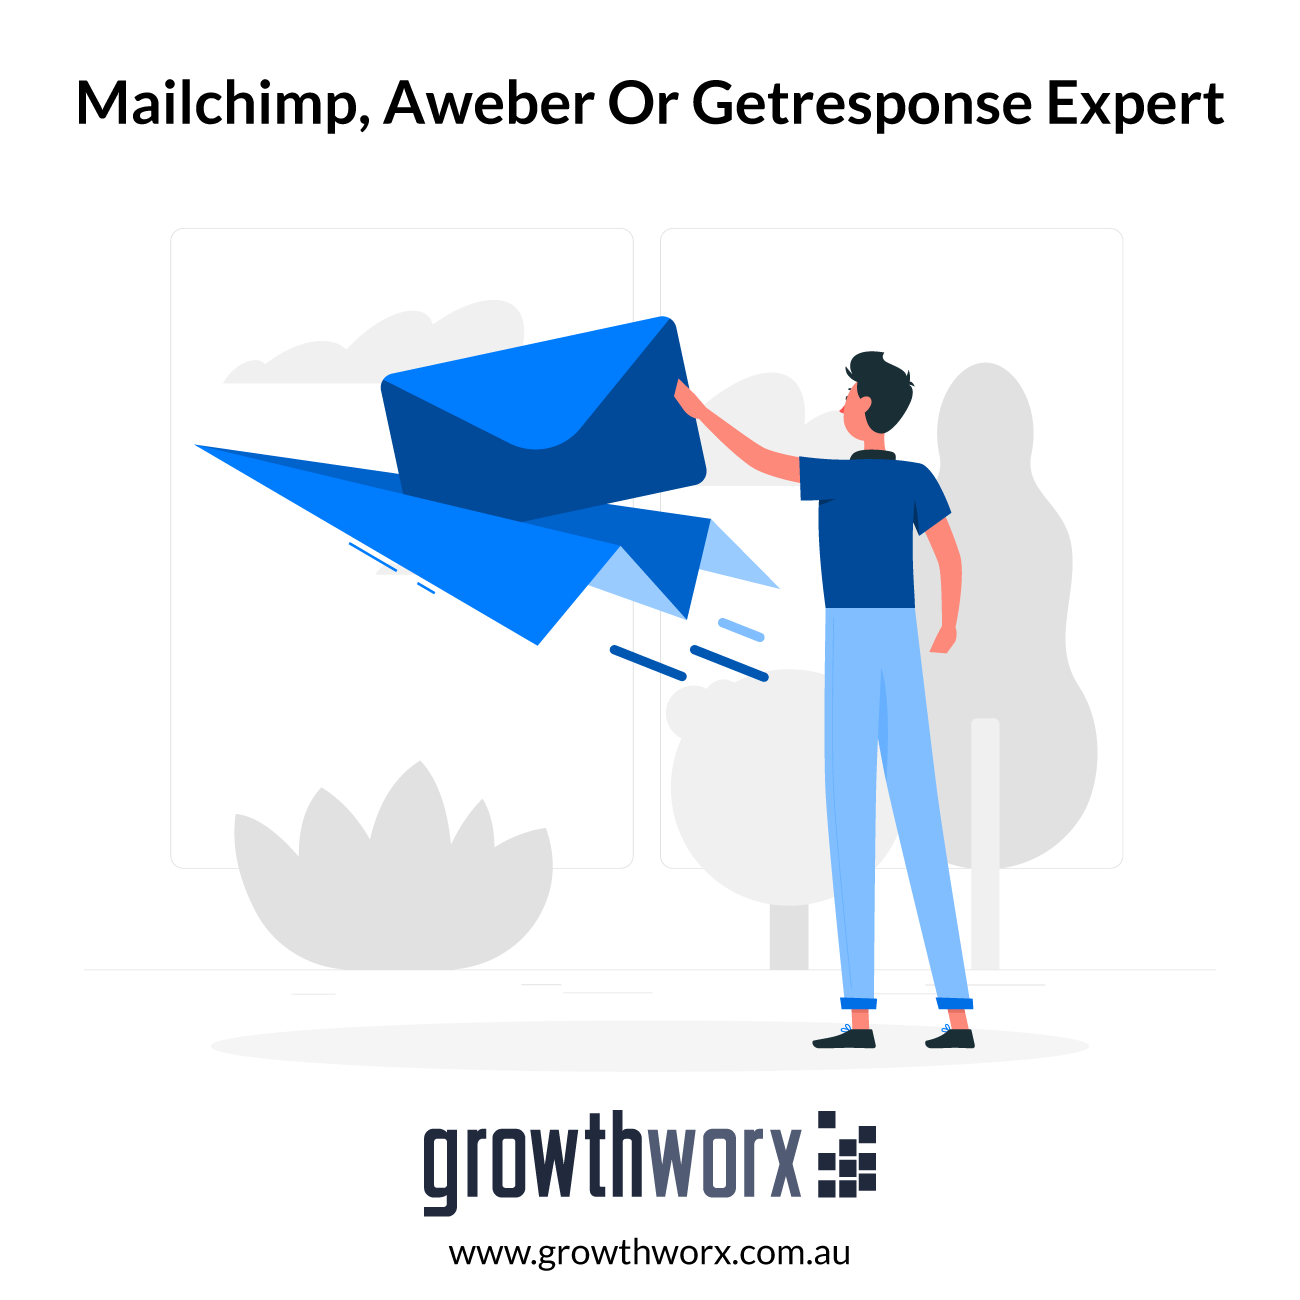 I will be your mailchimp, aweber or getresponse expert 1